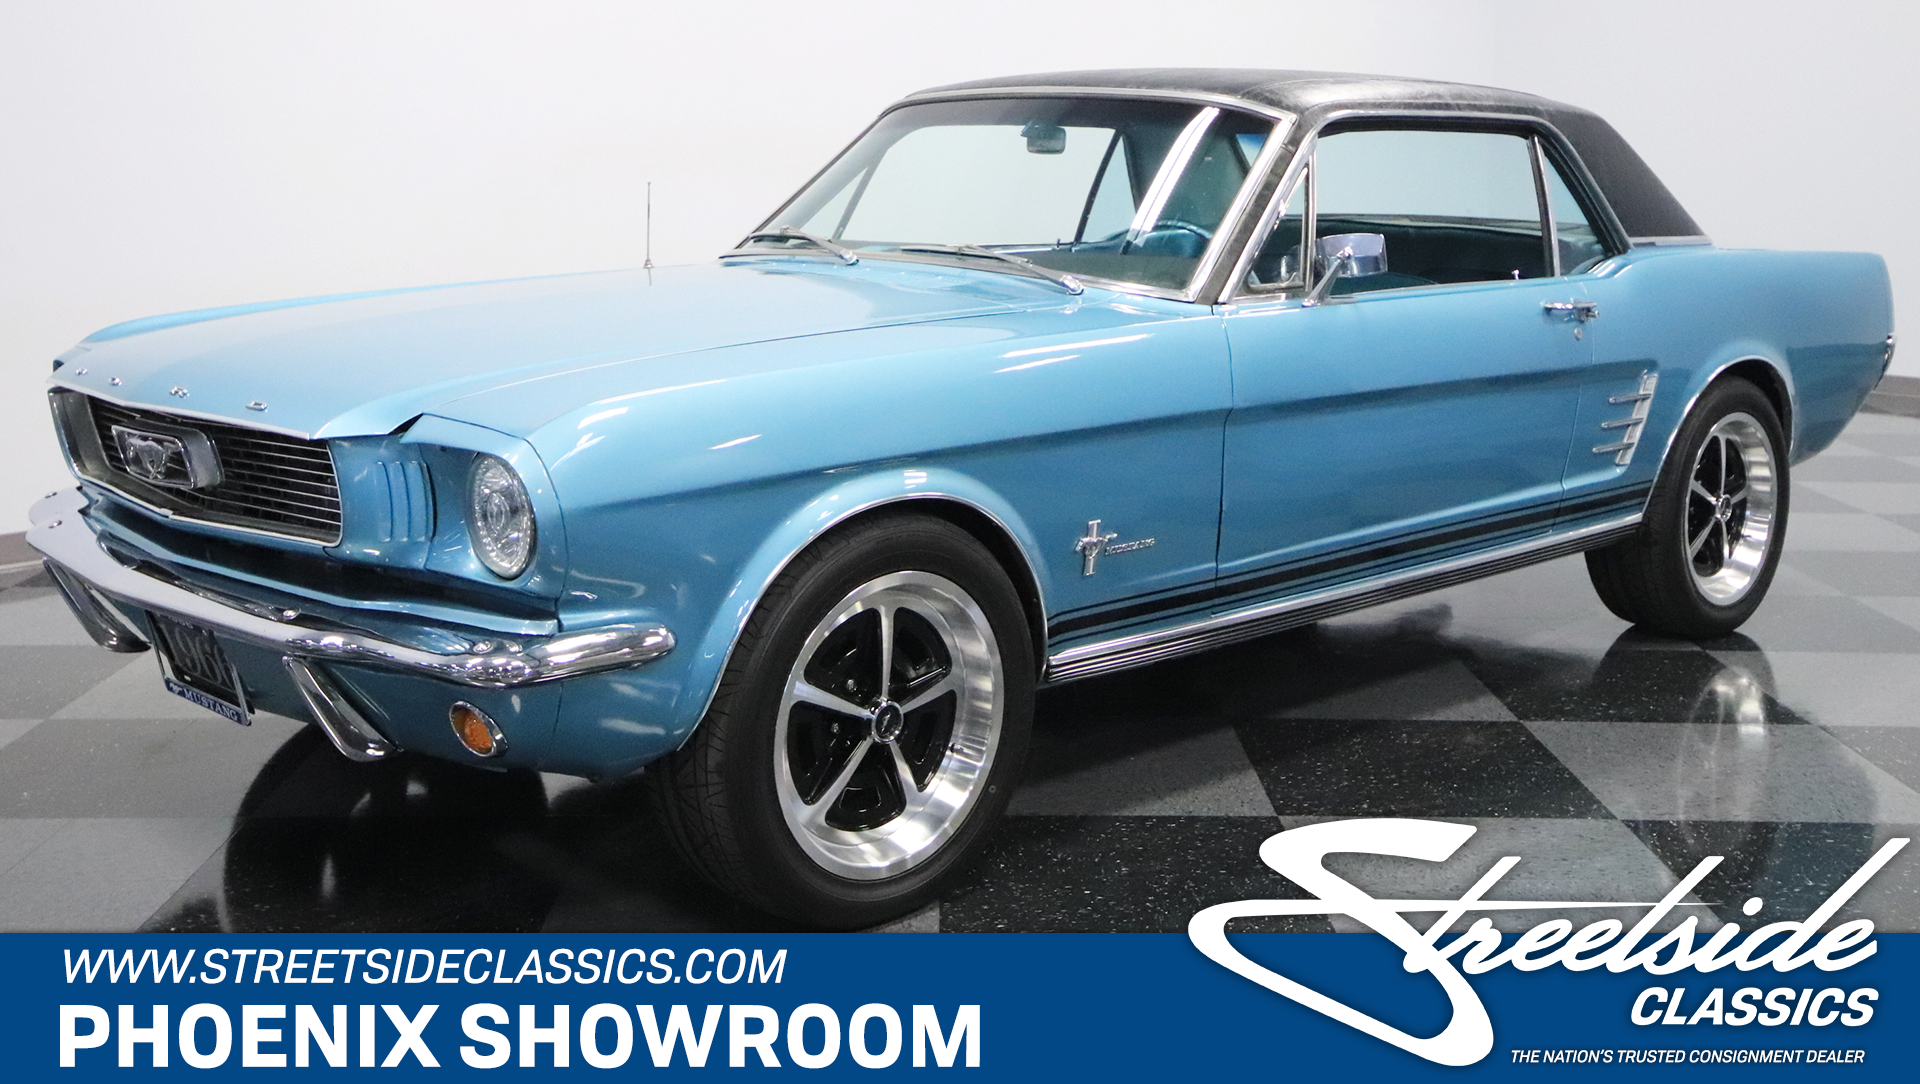 1966 ford mustang coyote restomod